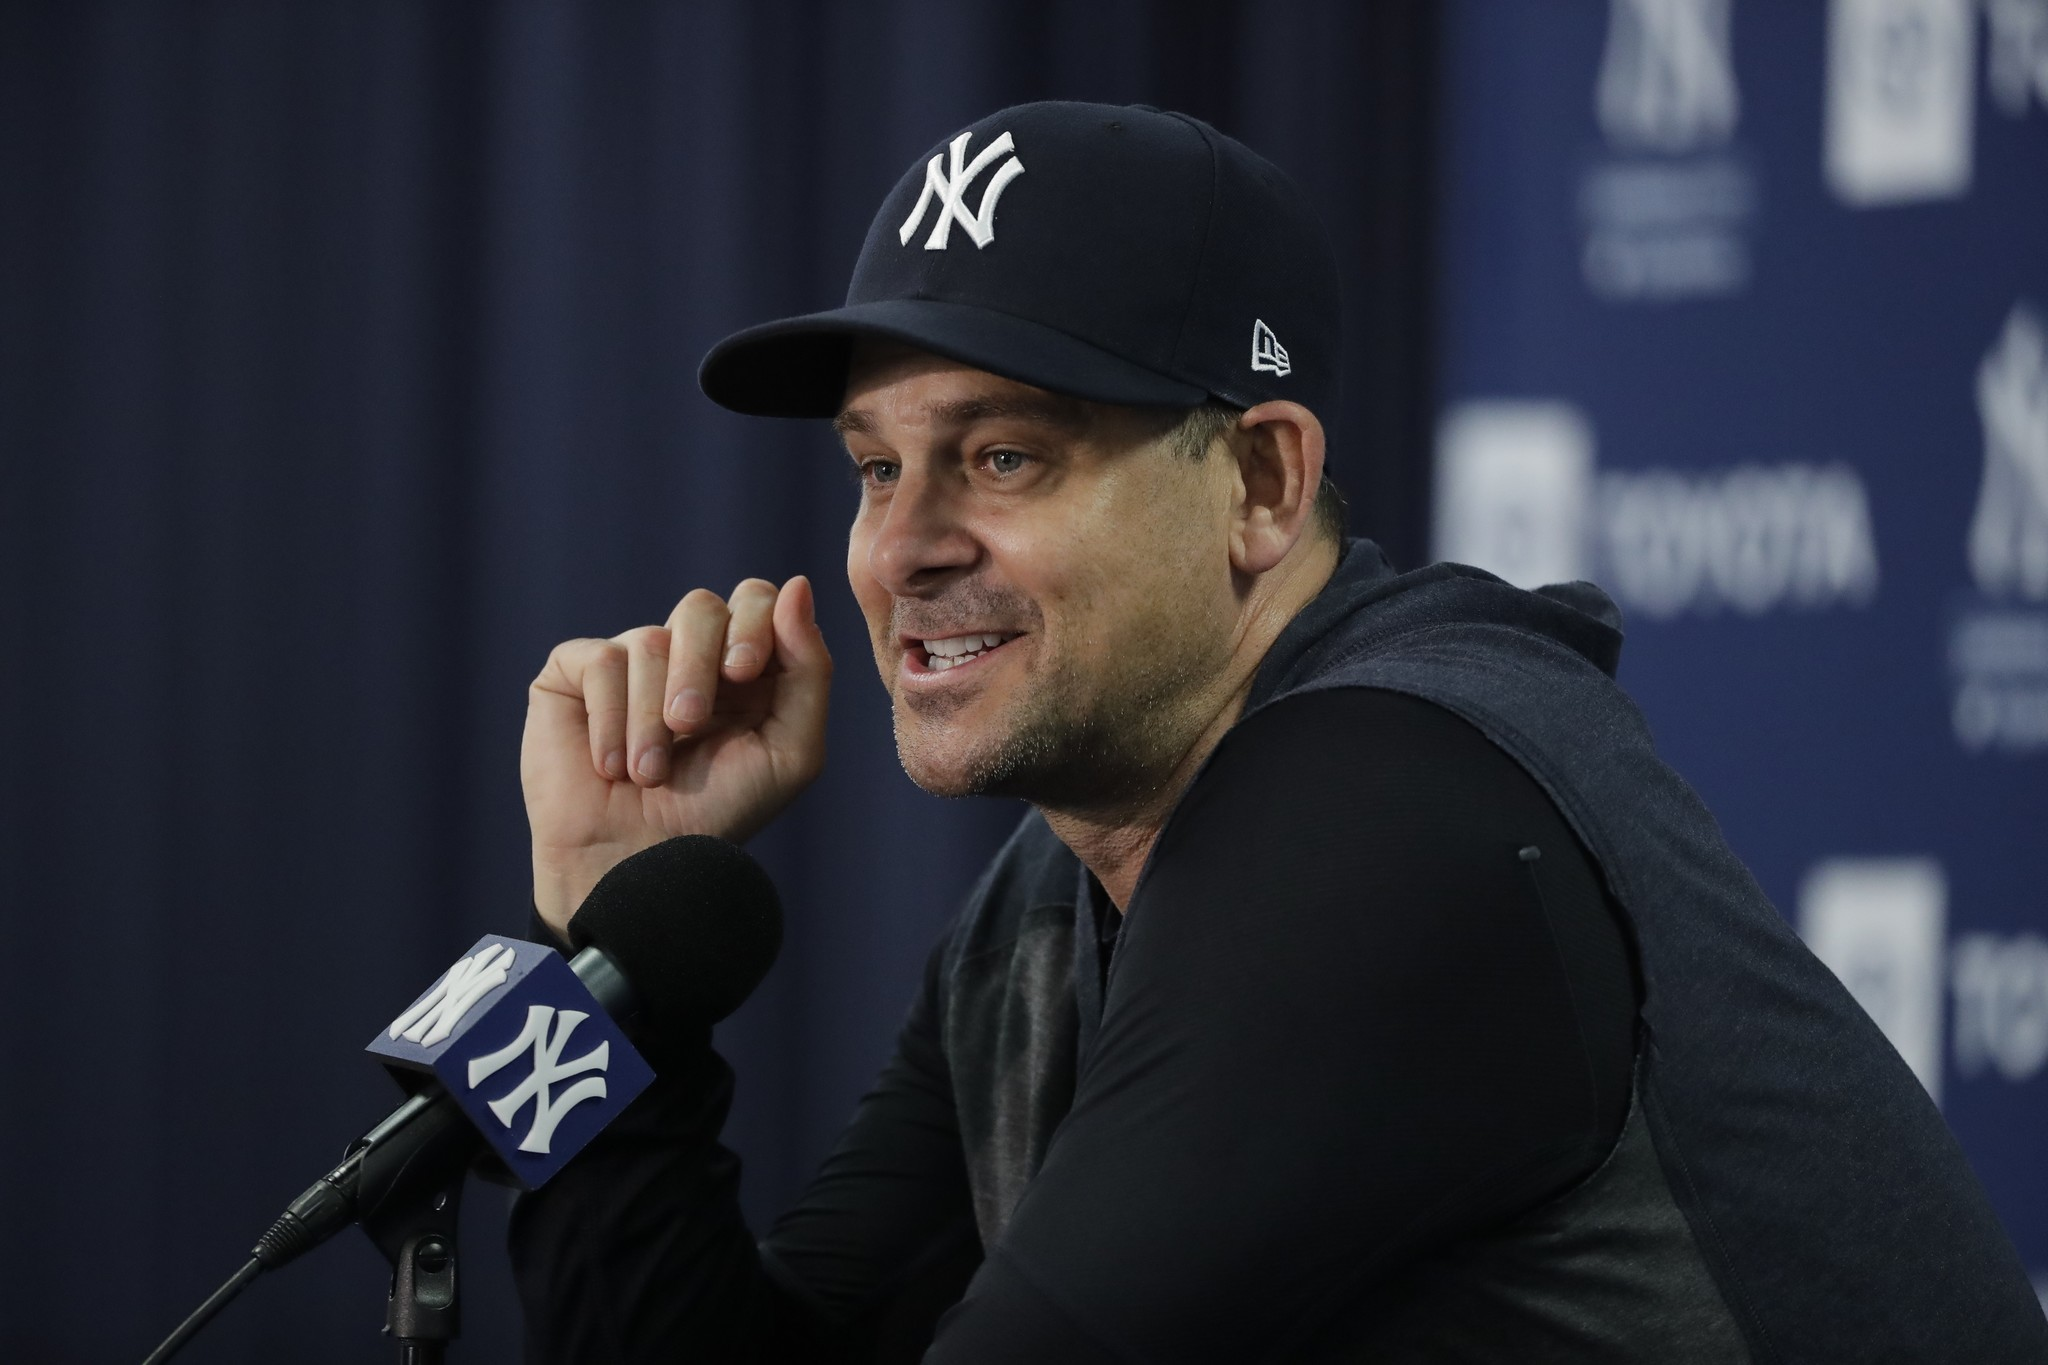 Yankees manager Aaron Boone optimistic injuries to Aaron Judge, Giancarlo Stanton won't be long-term issues